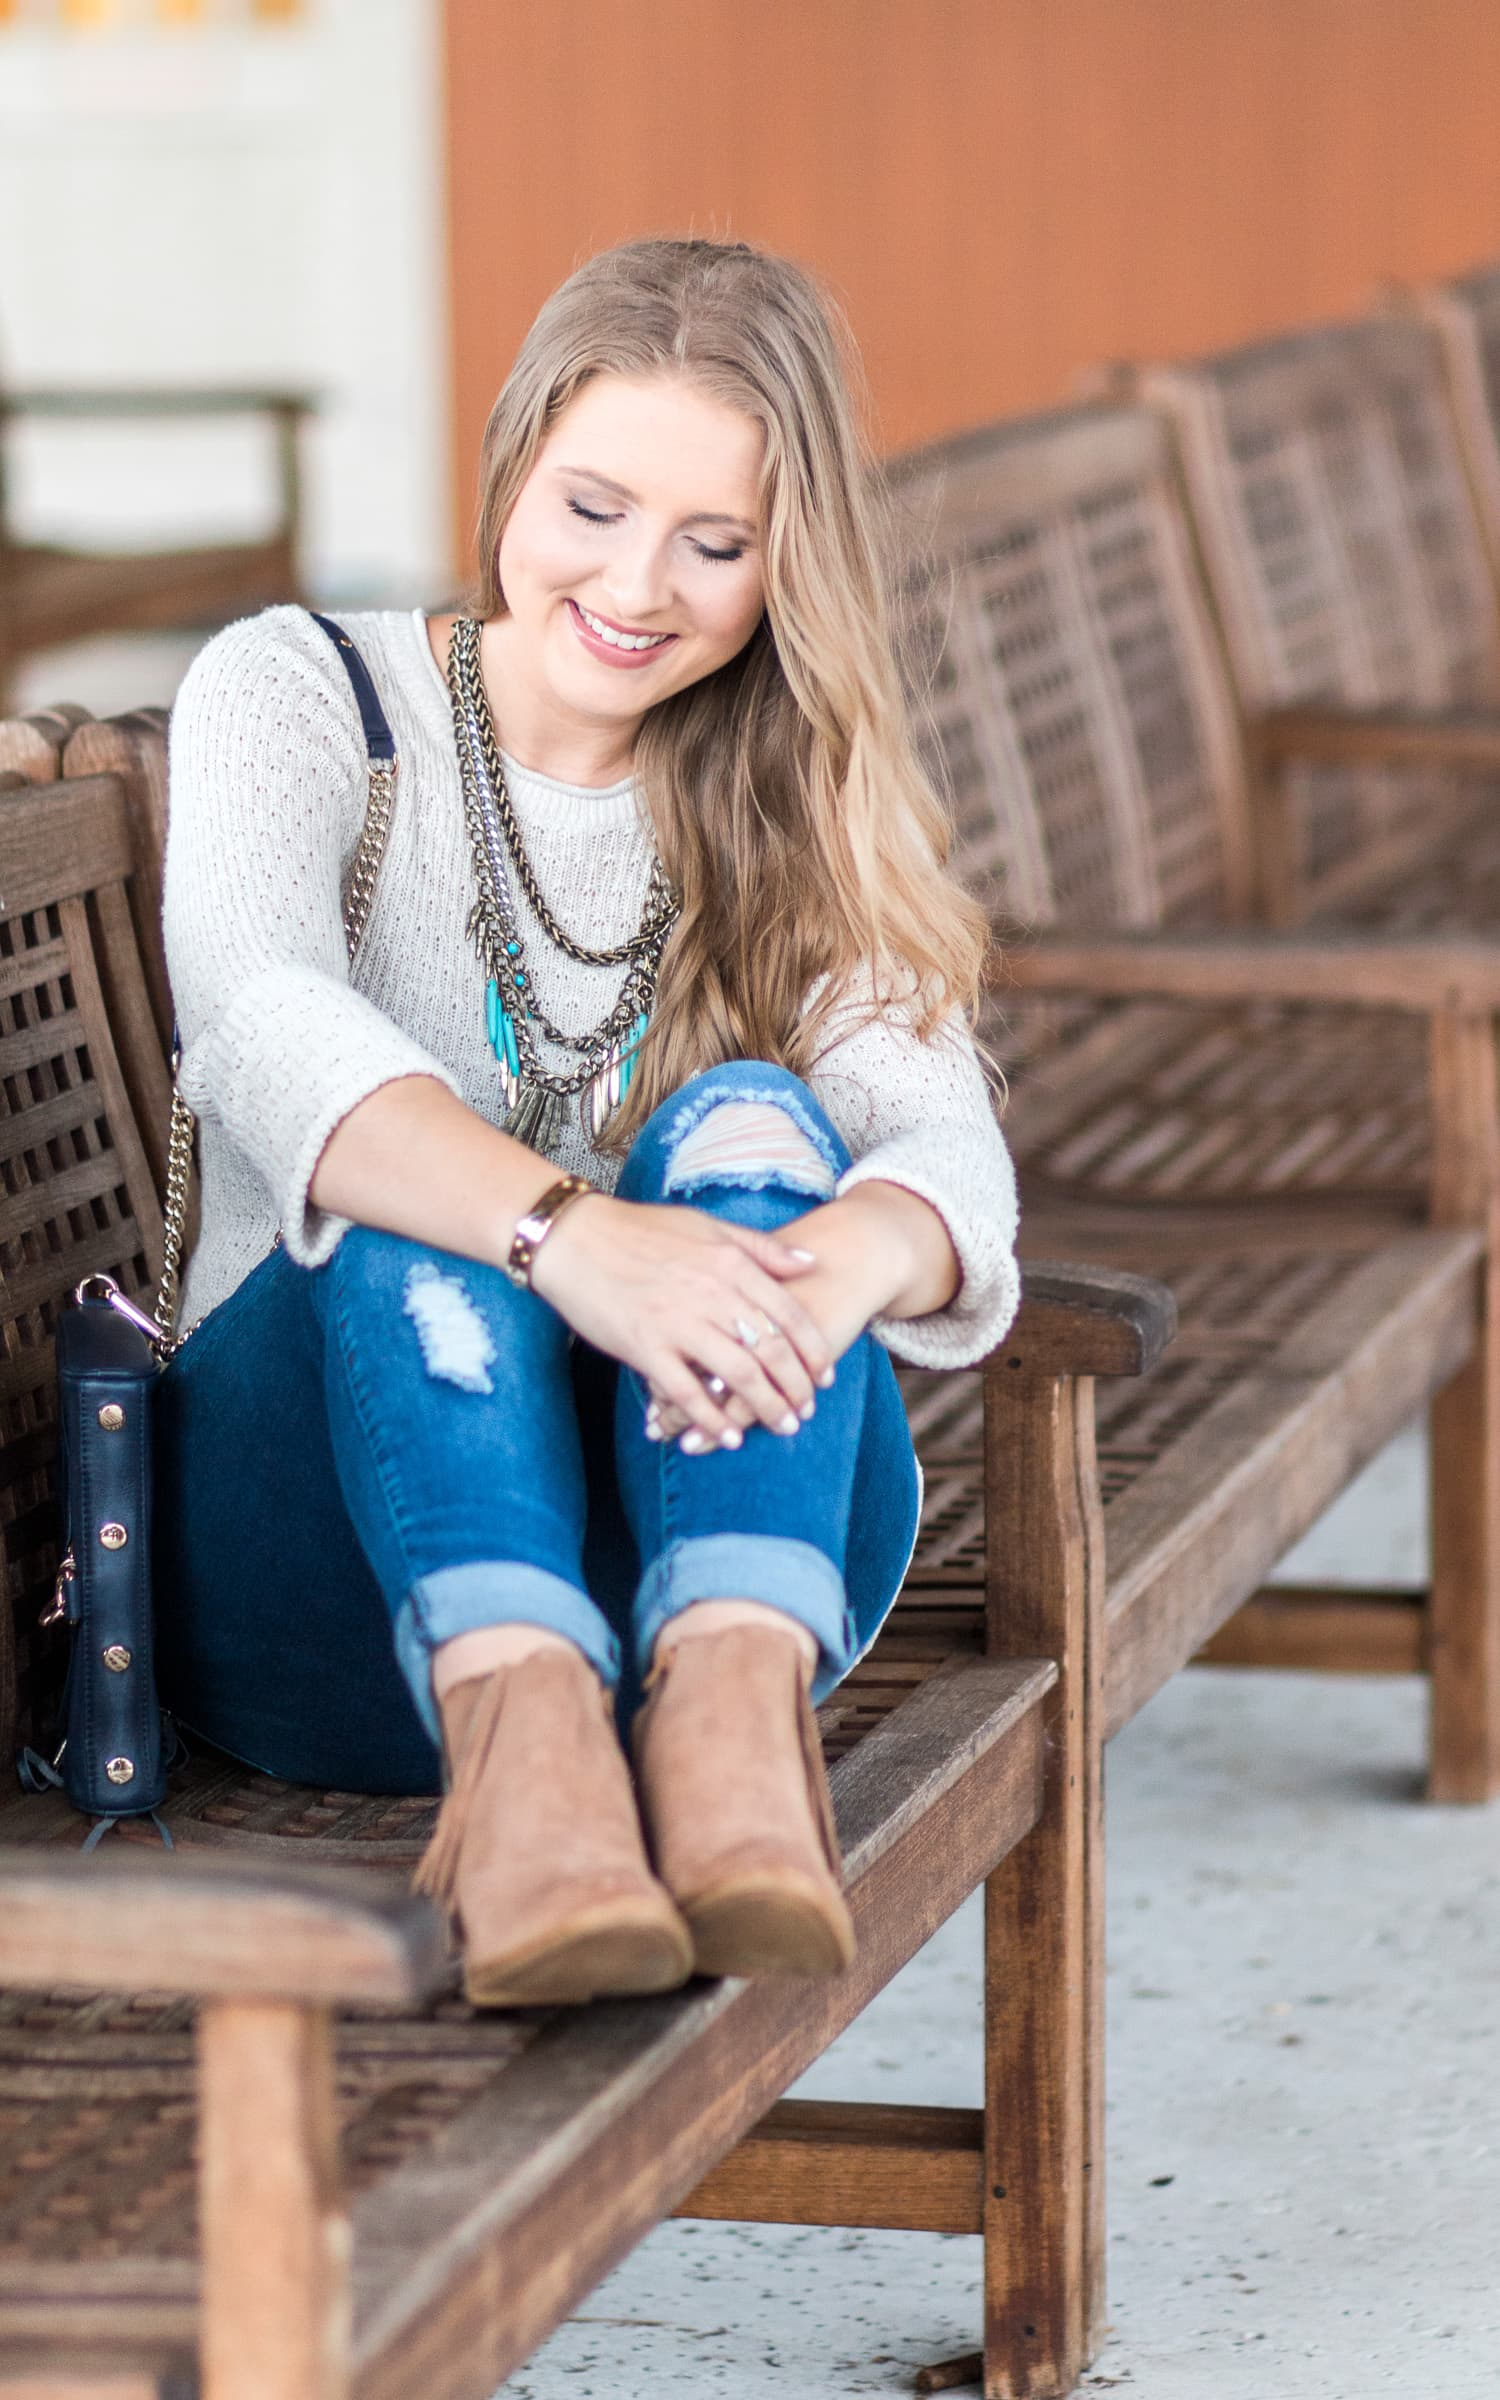 Cute fall outfit idea featuring a cream sweater with lace ruffle, destroyed denim jeans, navy crossbody bag, antiqued gold and turquoise statement necklace, and Lucky Brand Beeliner fringe booties styled by blogger Ashley Brooke Nicholas.